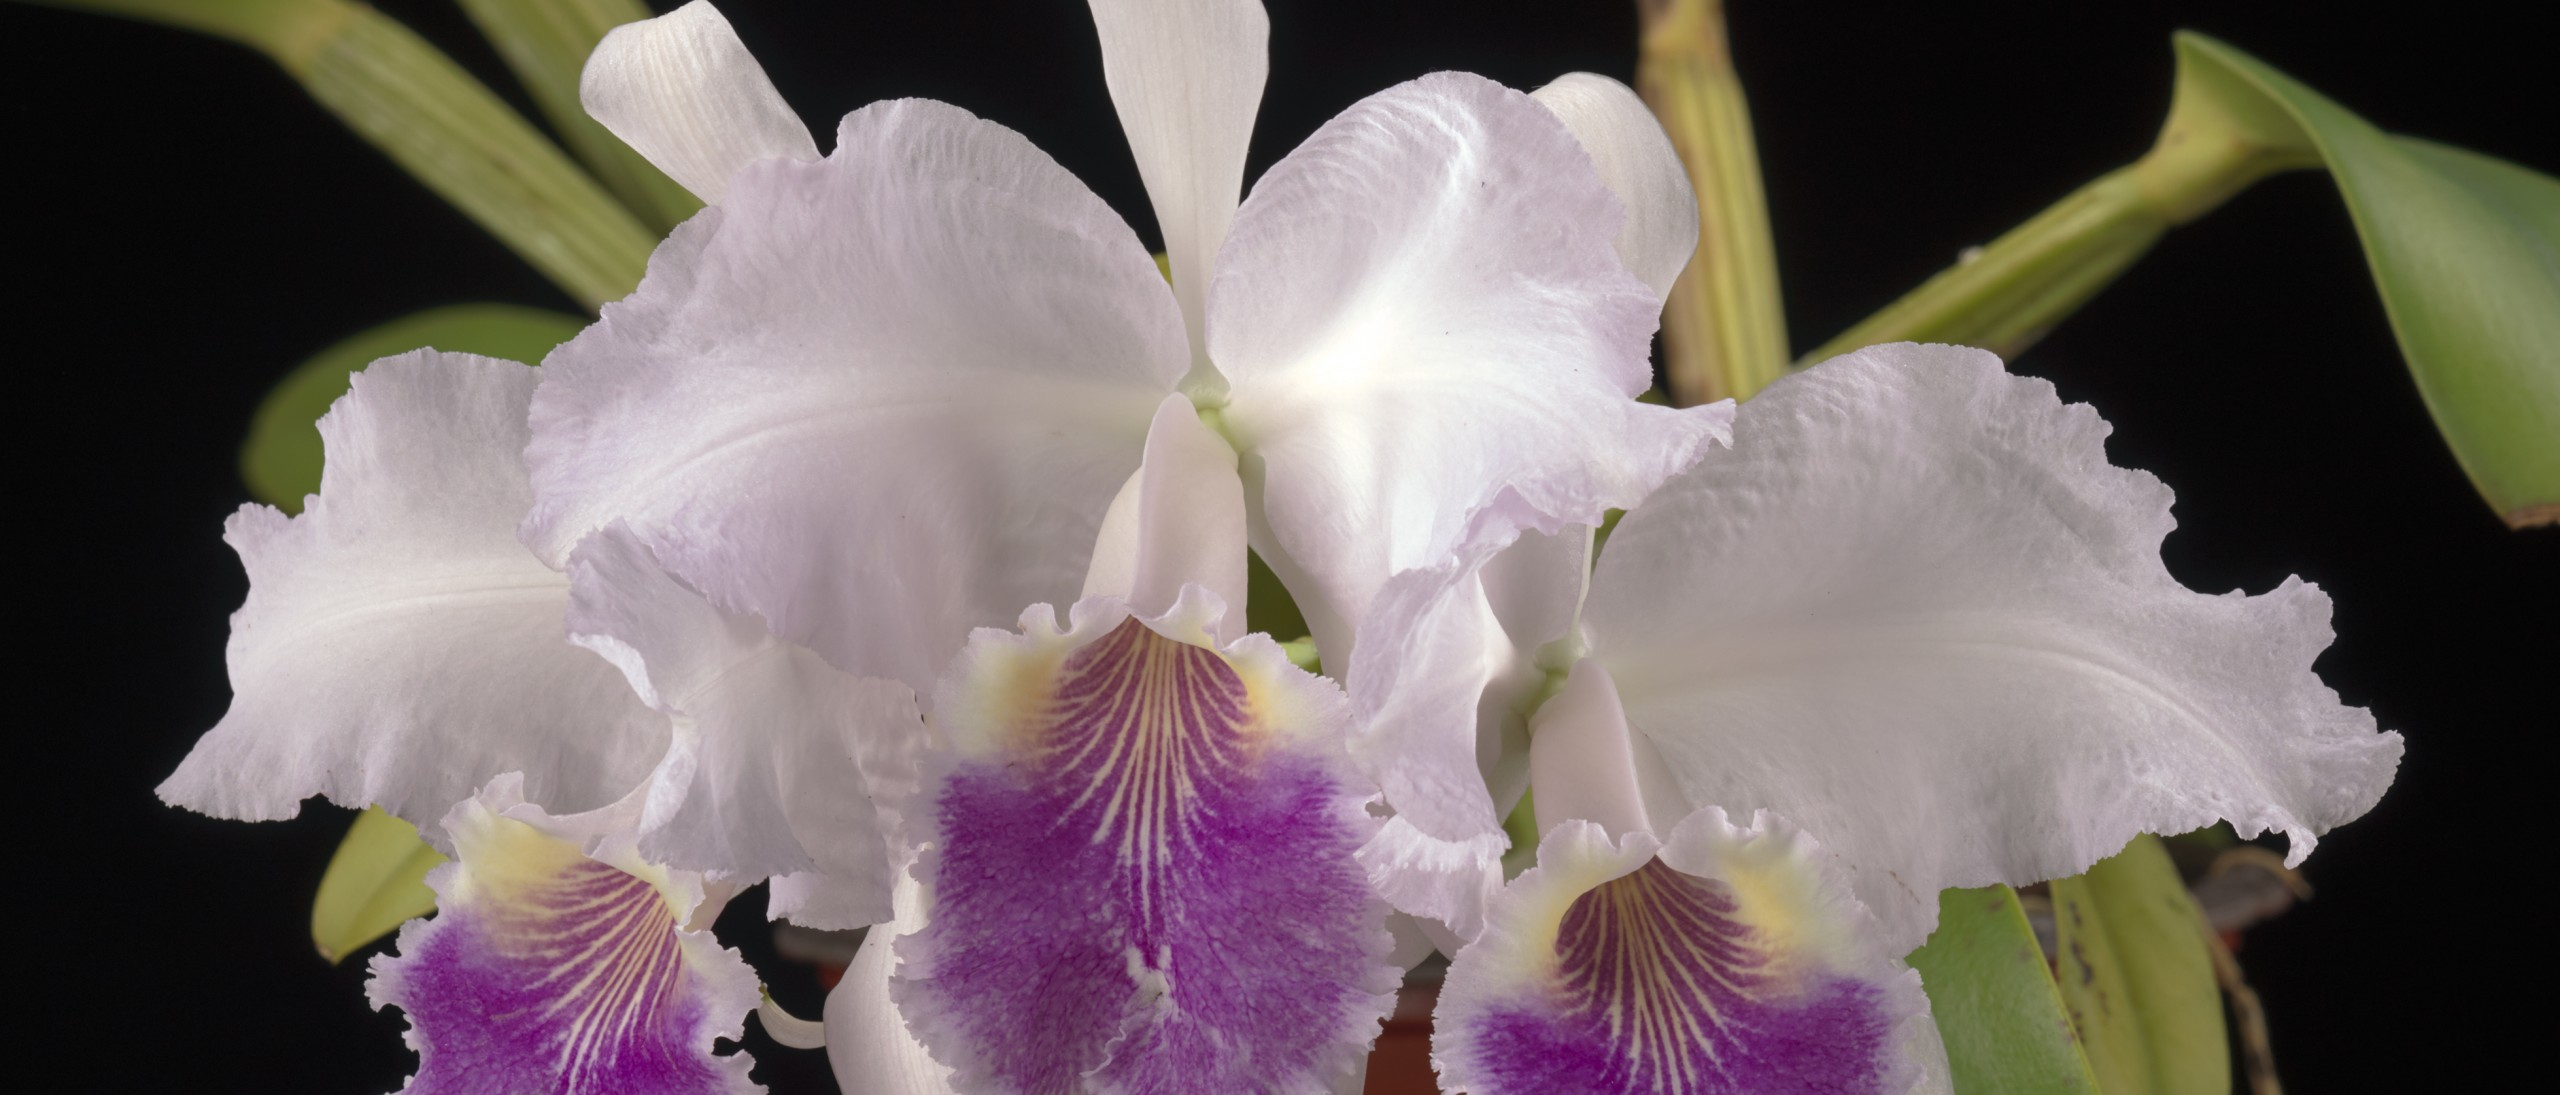 Three white orchid flowers with purple lip growing in pot